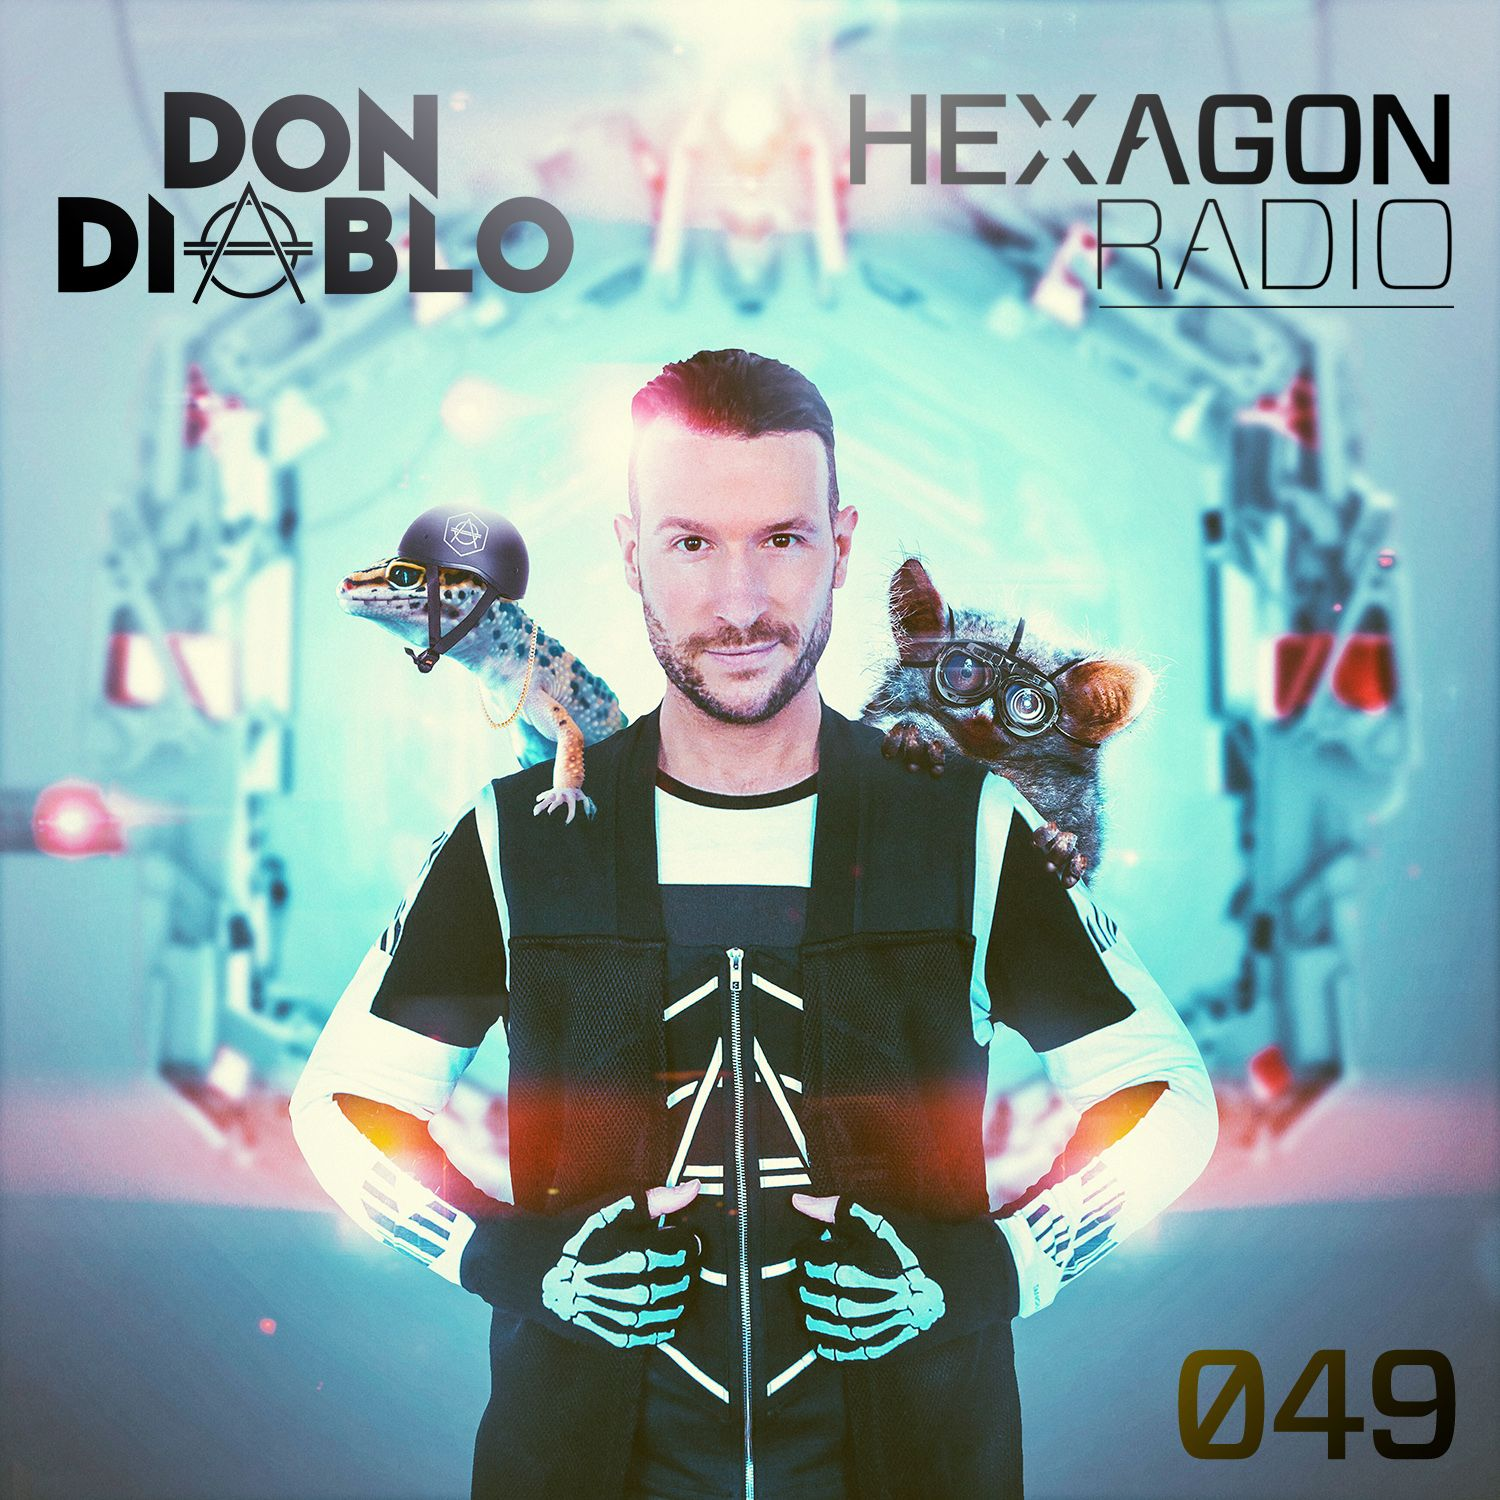 Don Diablo - Hexagon Radio Episode 049